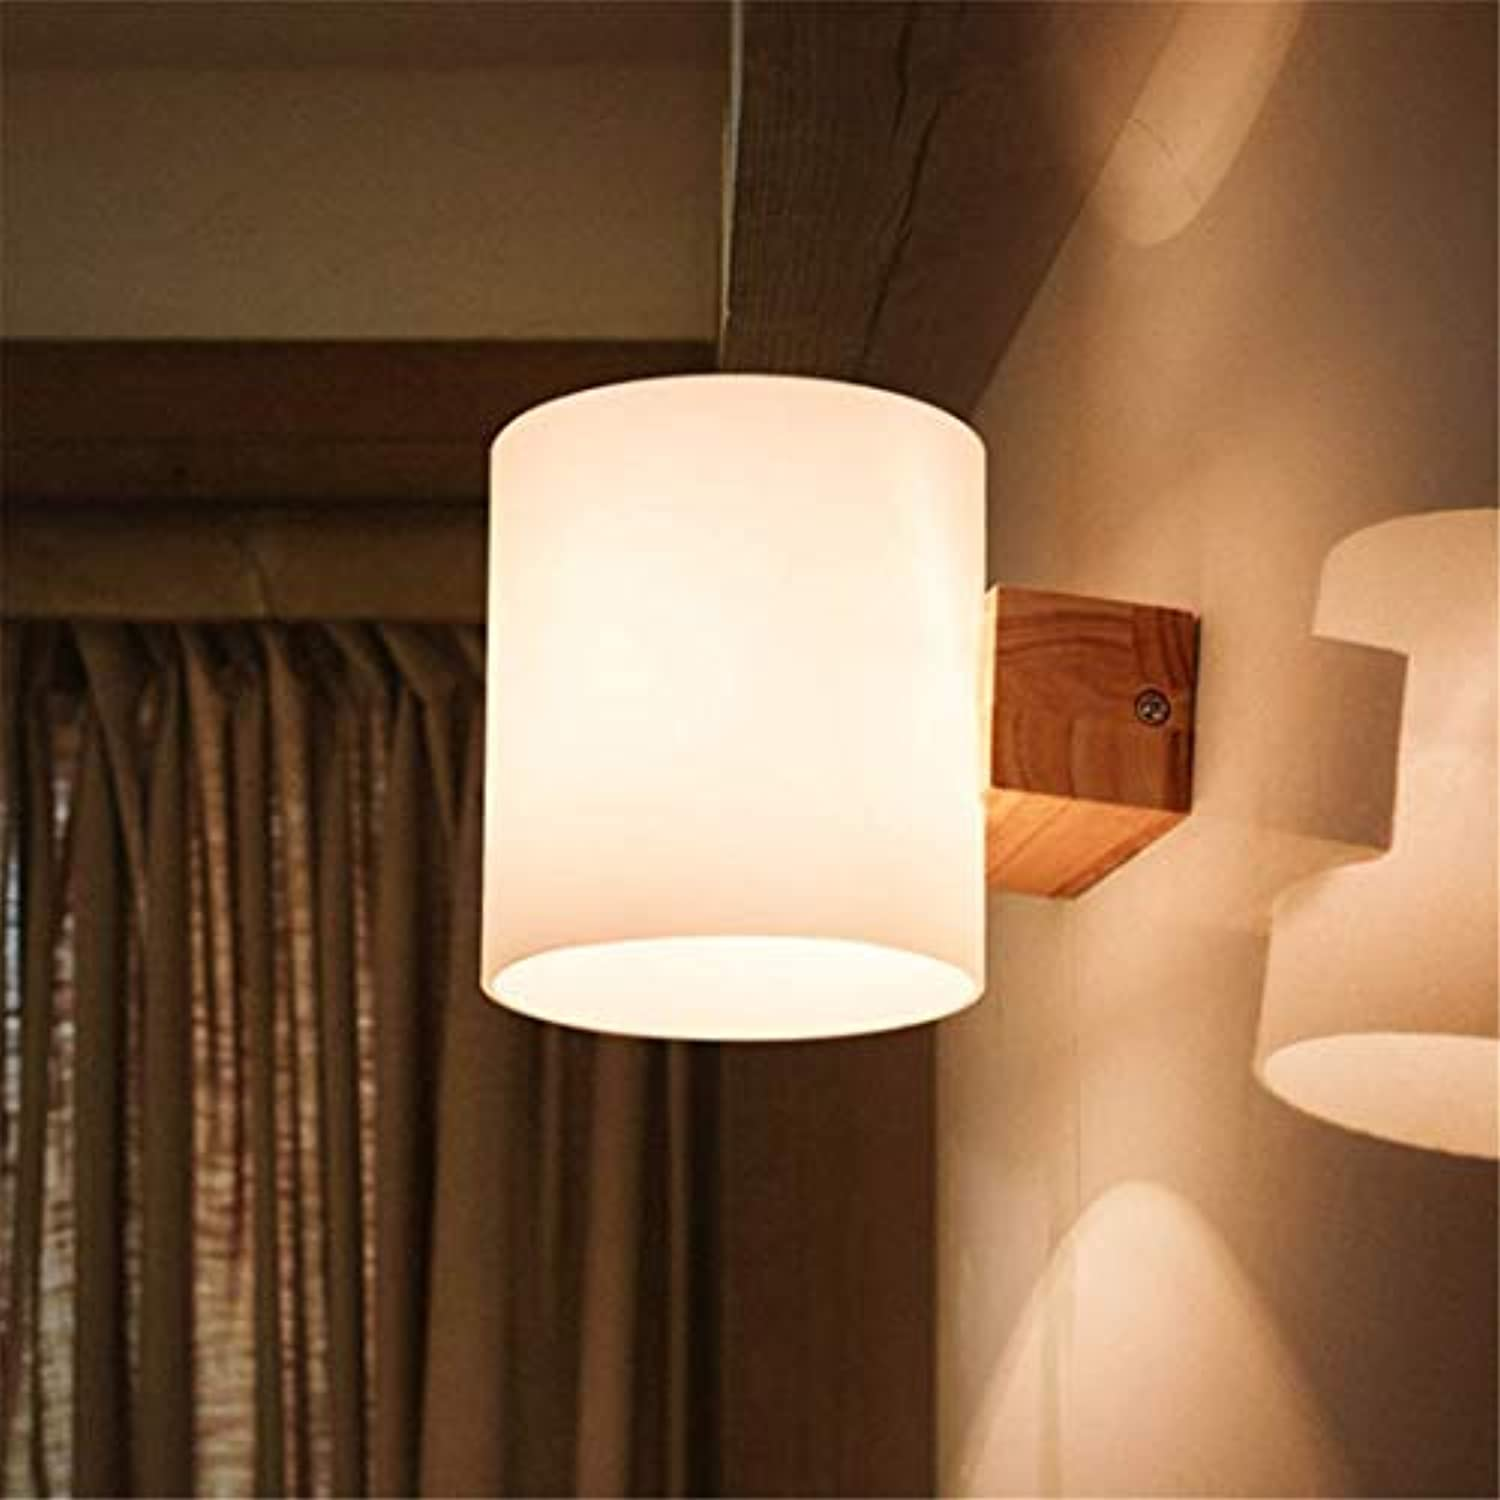 Lichtwall Sconce Wall Lights Nordic Living Room Wall Lamp Modern Simple Creative Personality Aisle Wall Lamp Bedroom Light Wood And Glass Led Wall Lamp [Energy Class A++]